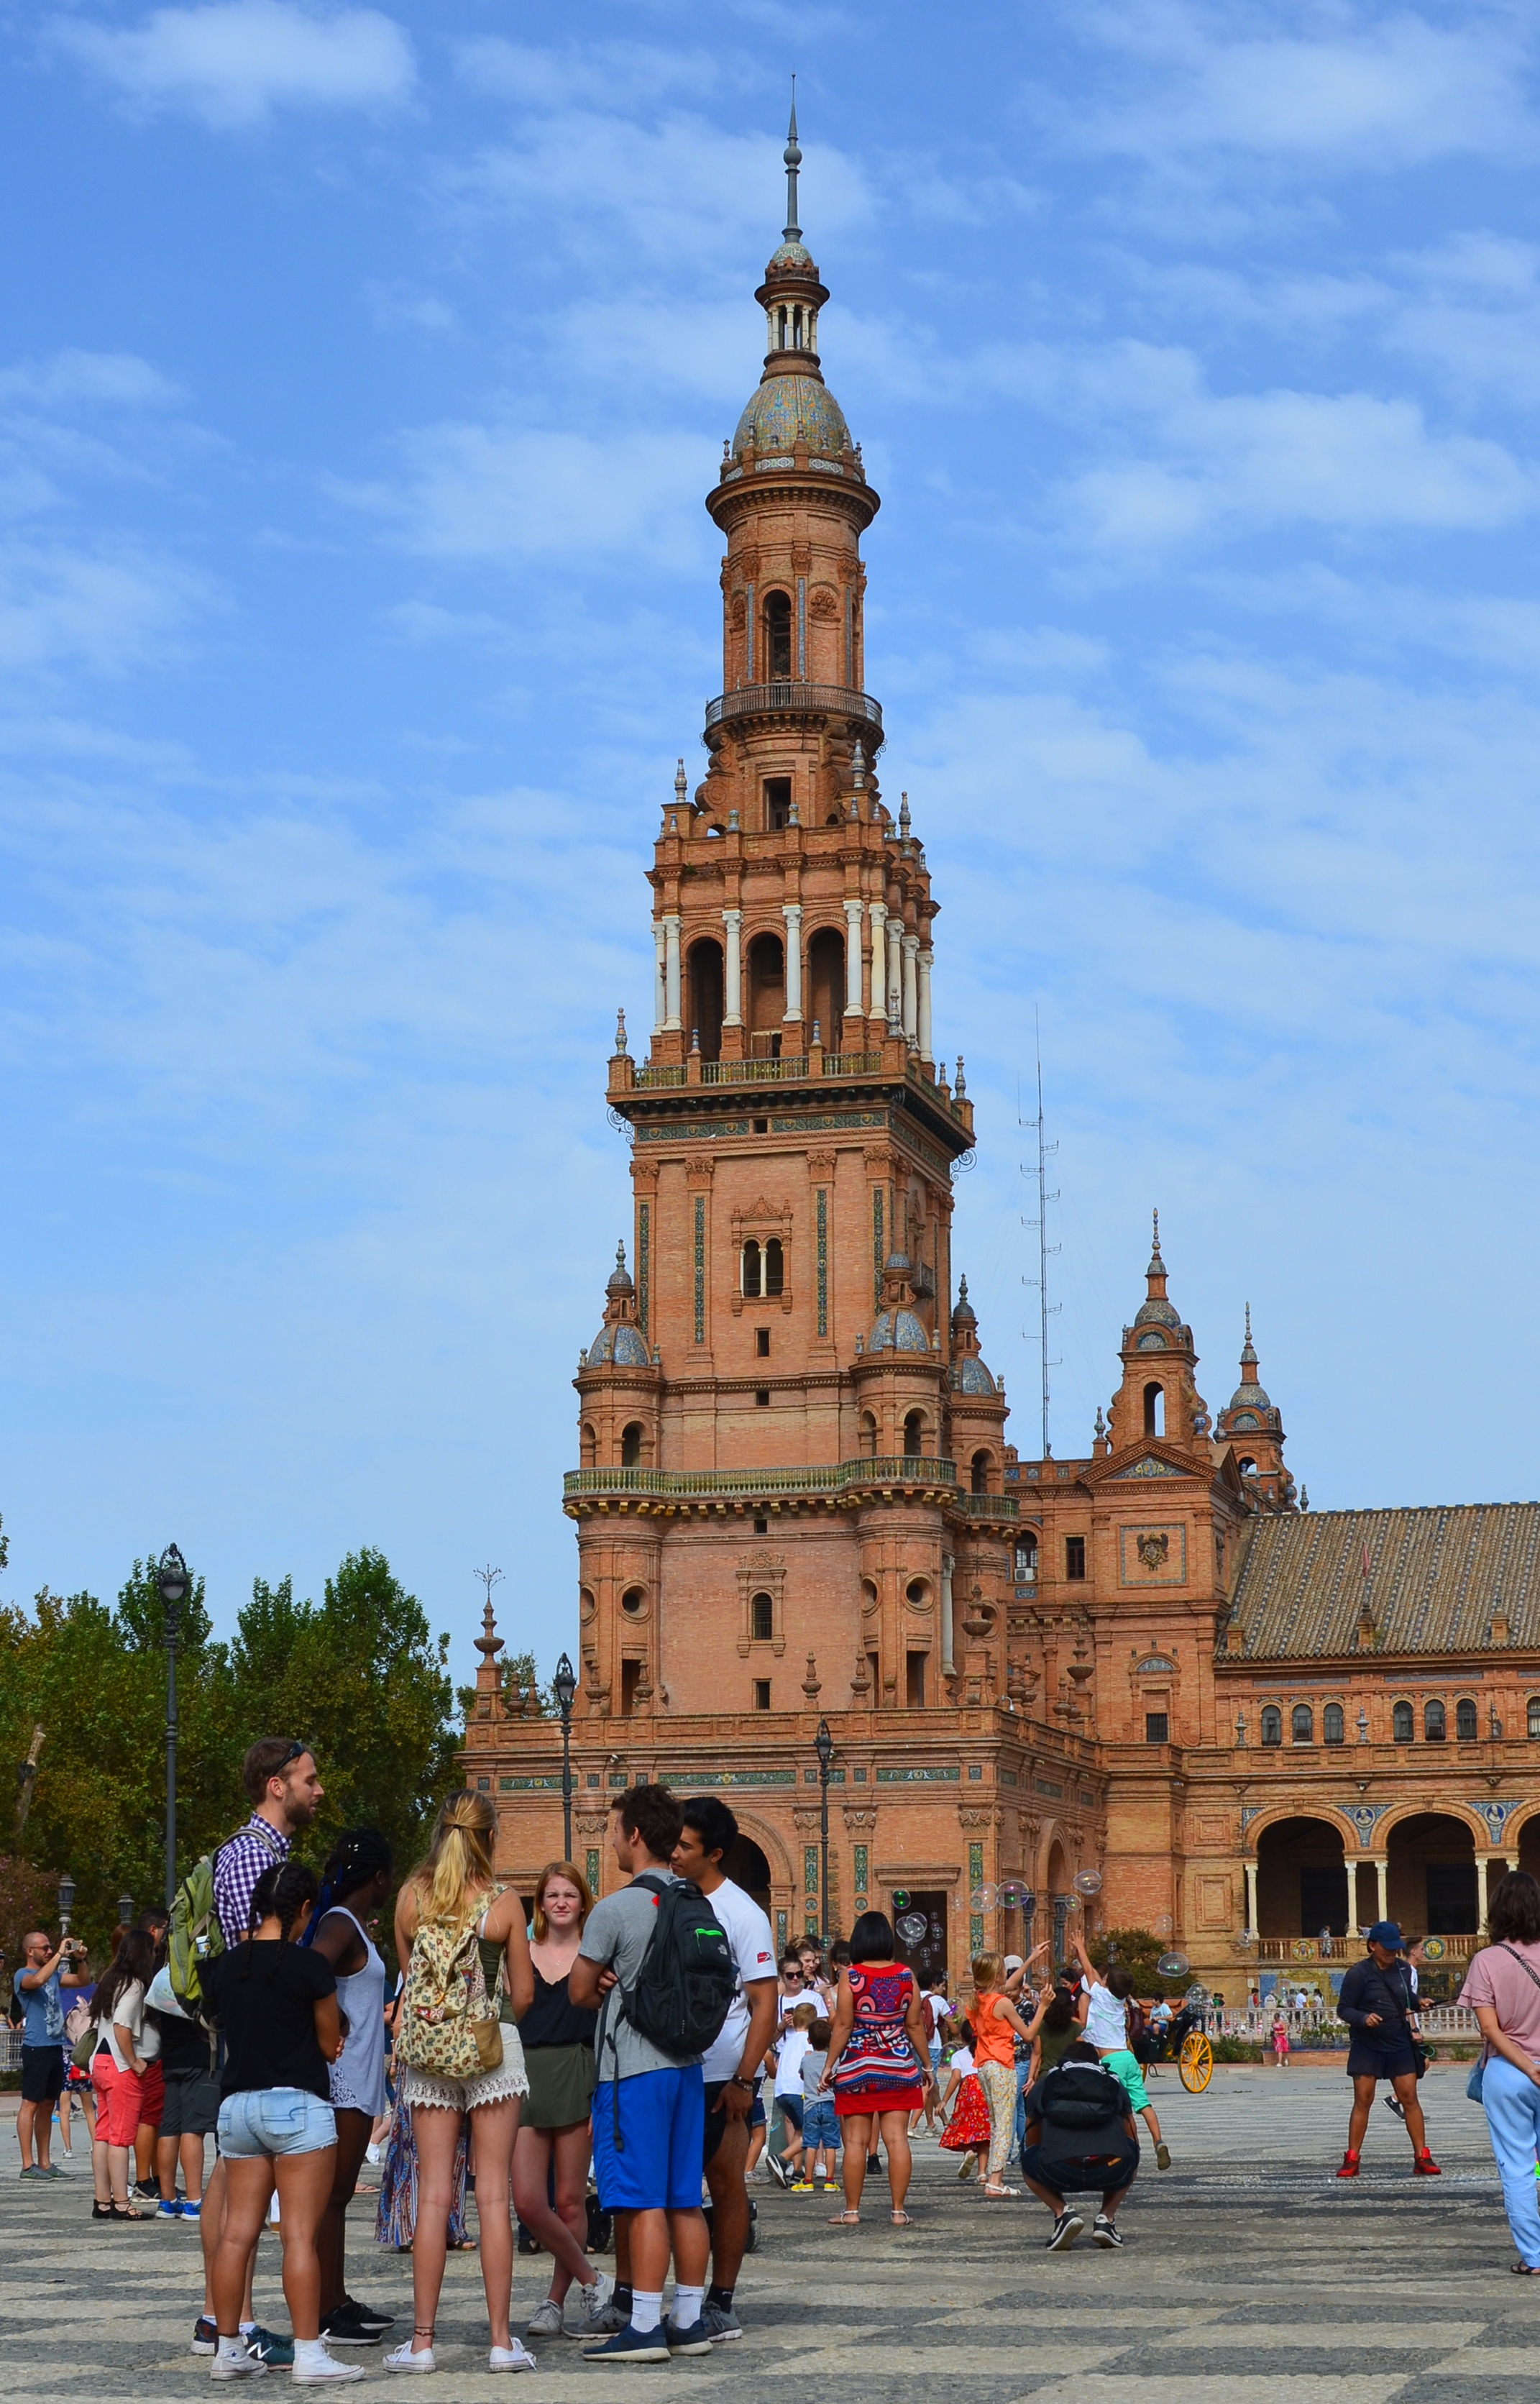 Proctor en Segovia visits the Plaza de España of Sevilla